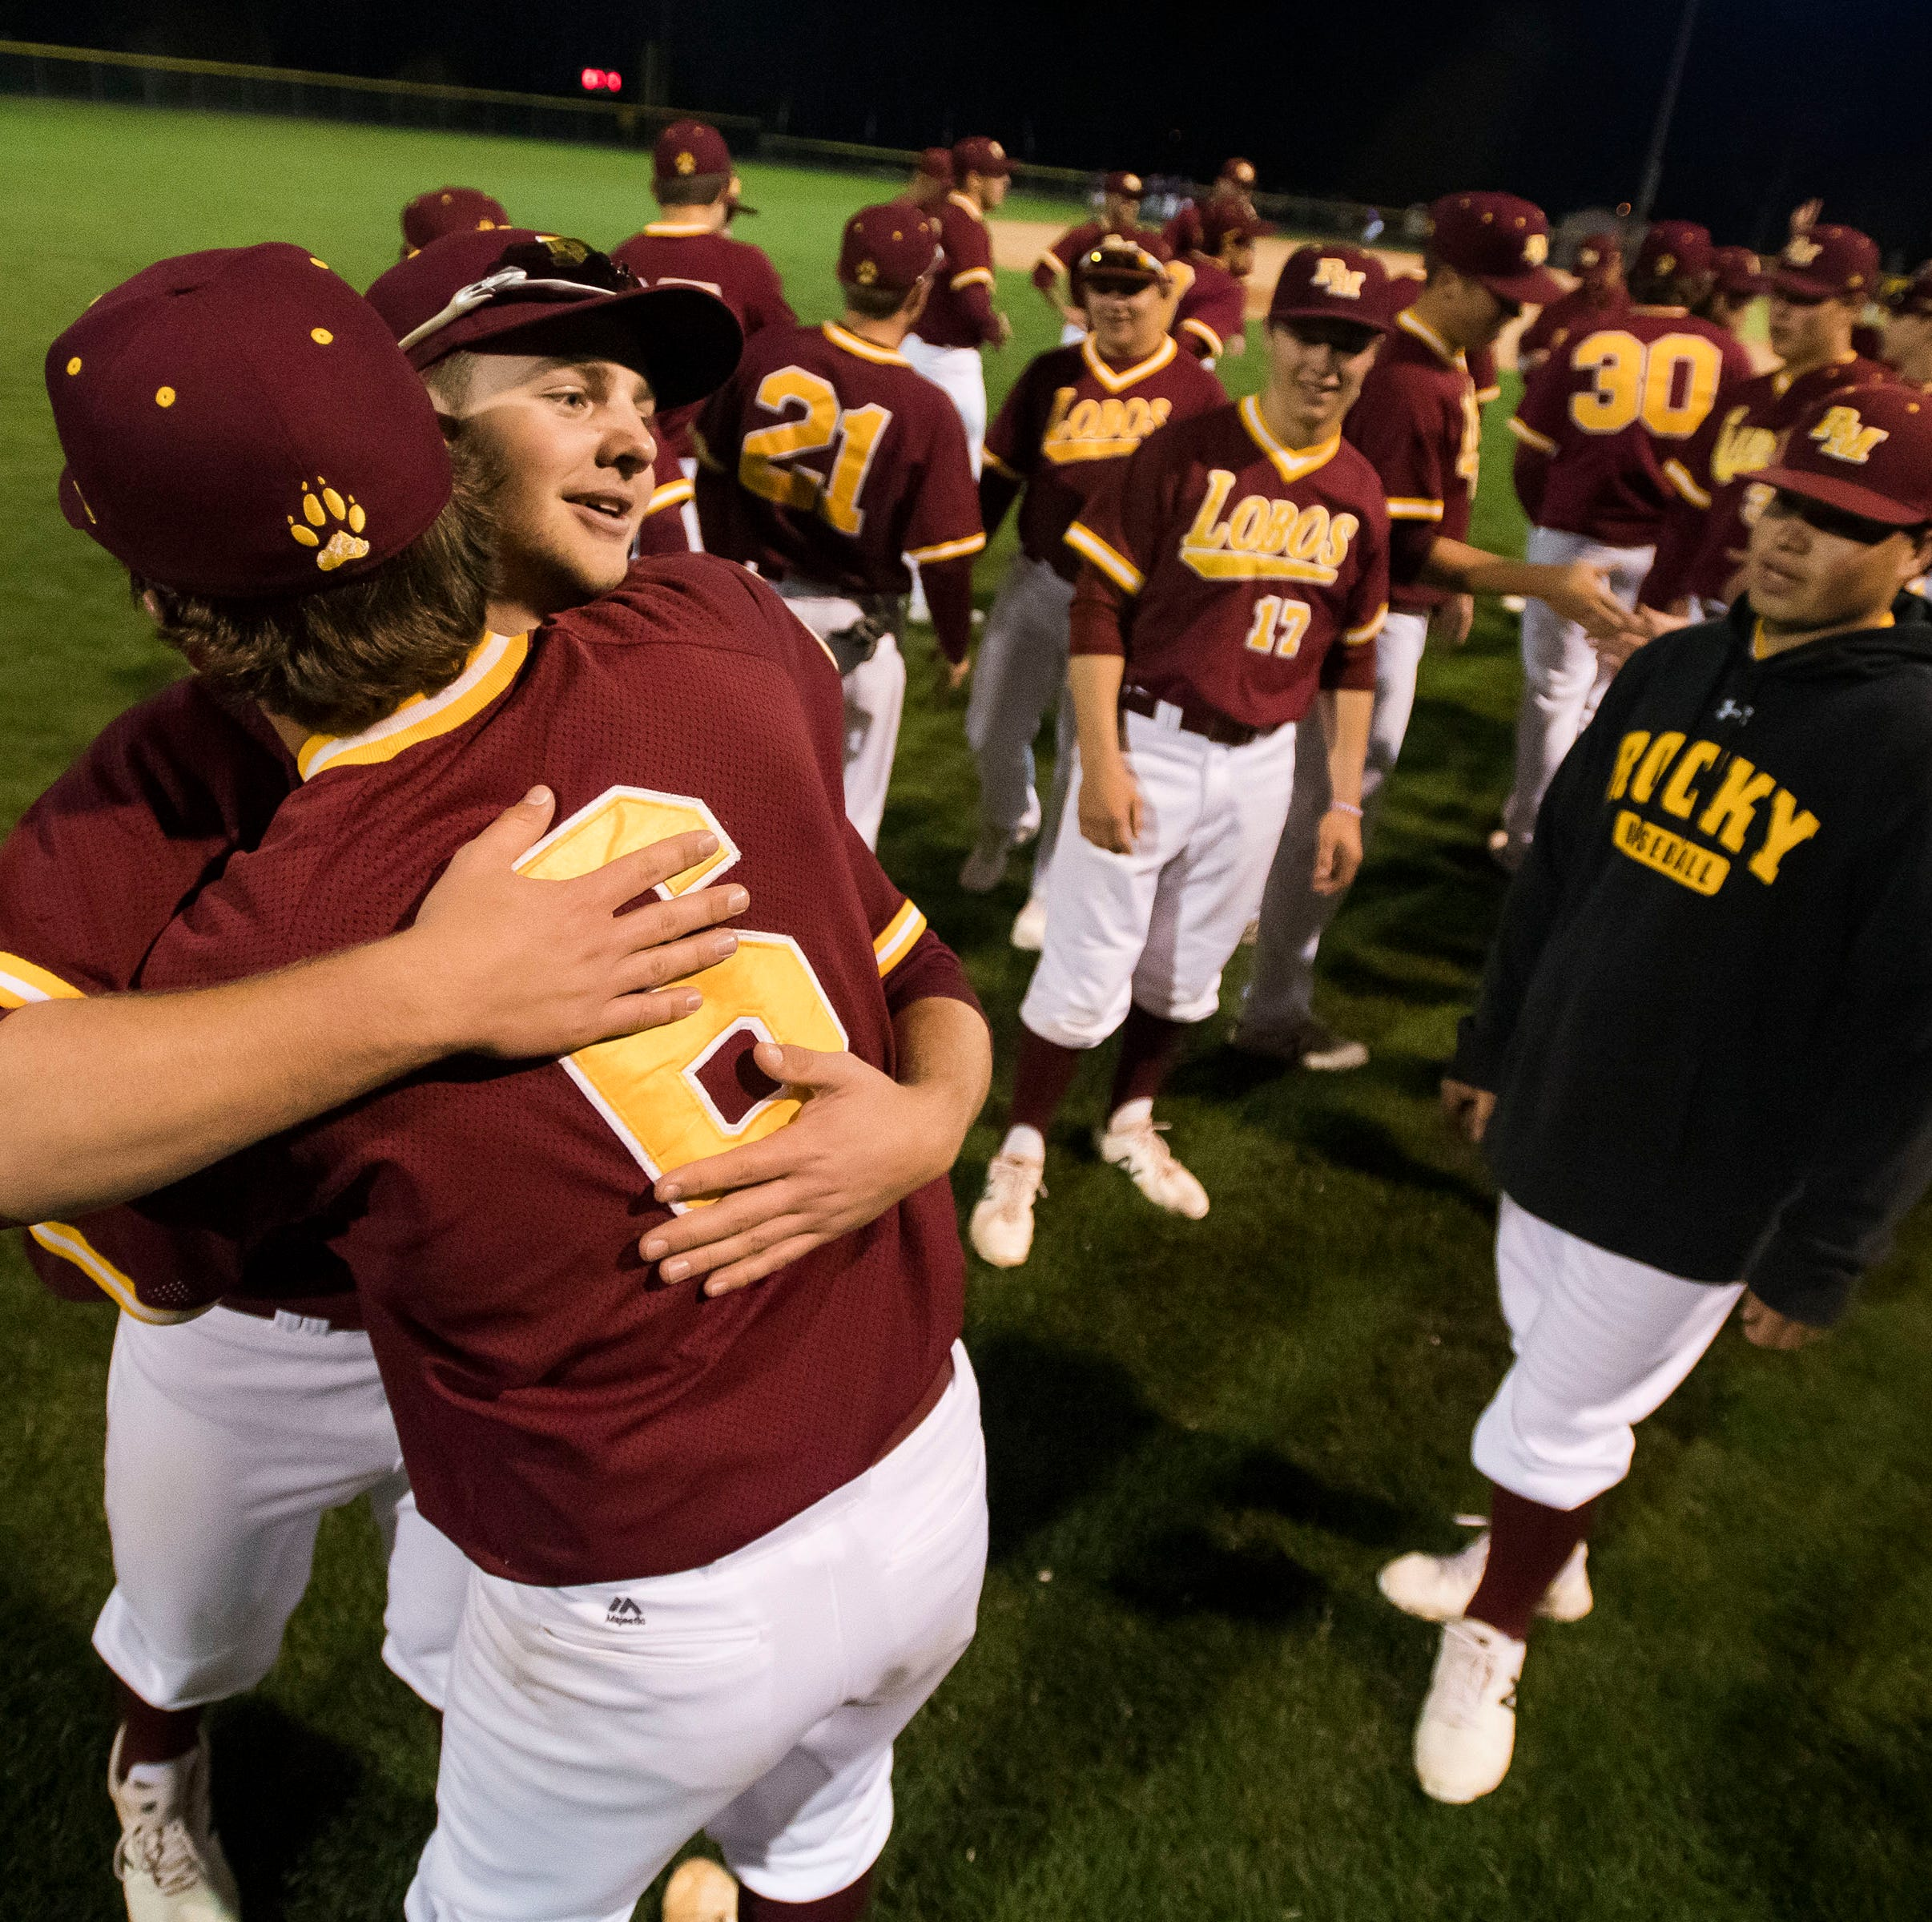 Rocky Mountain baseball's domination of the city continues with win over Fort Collins